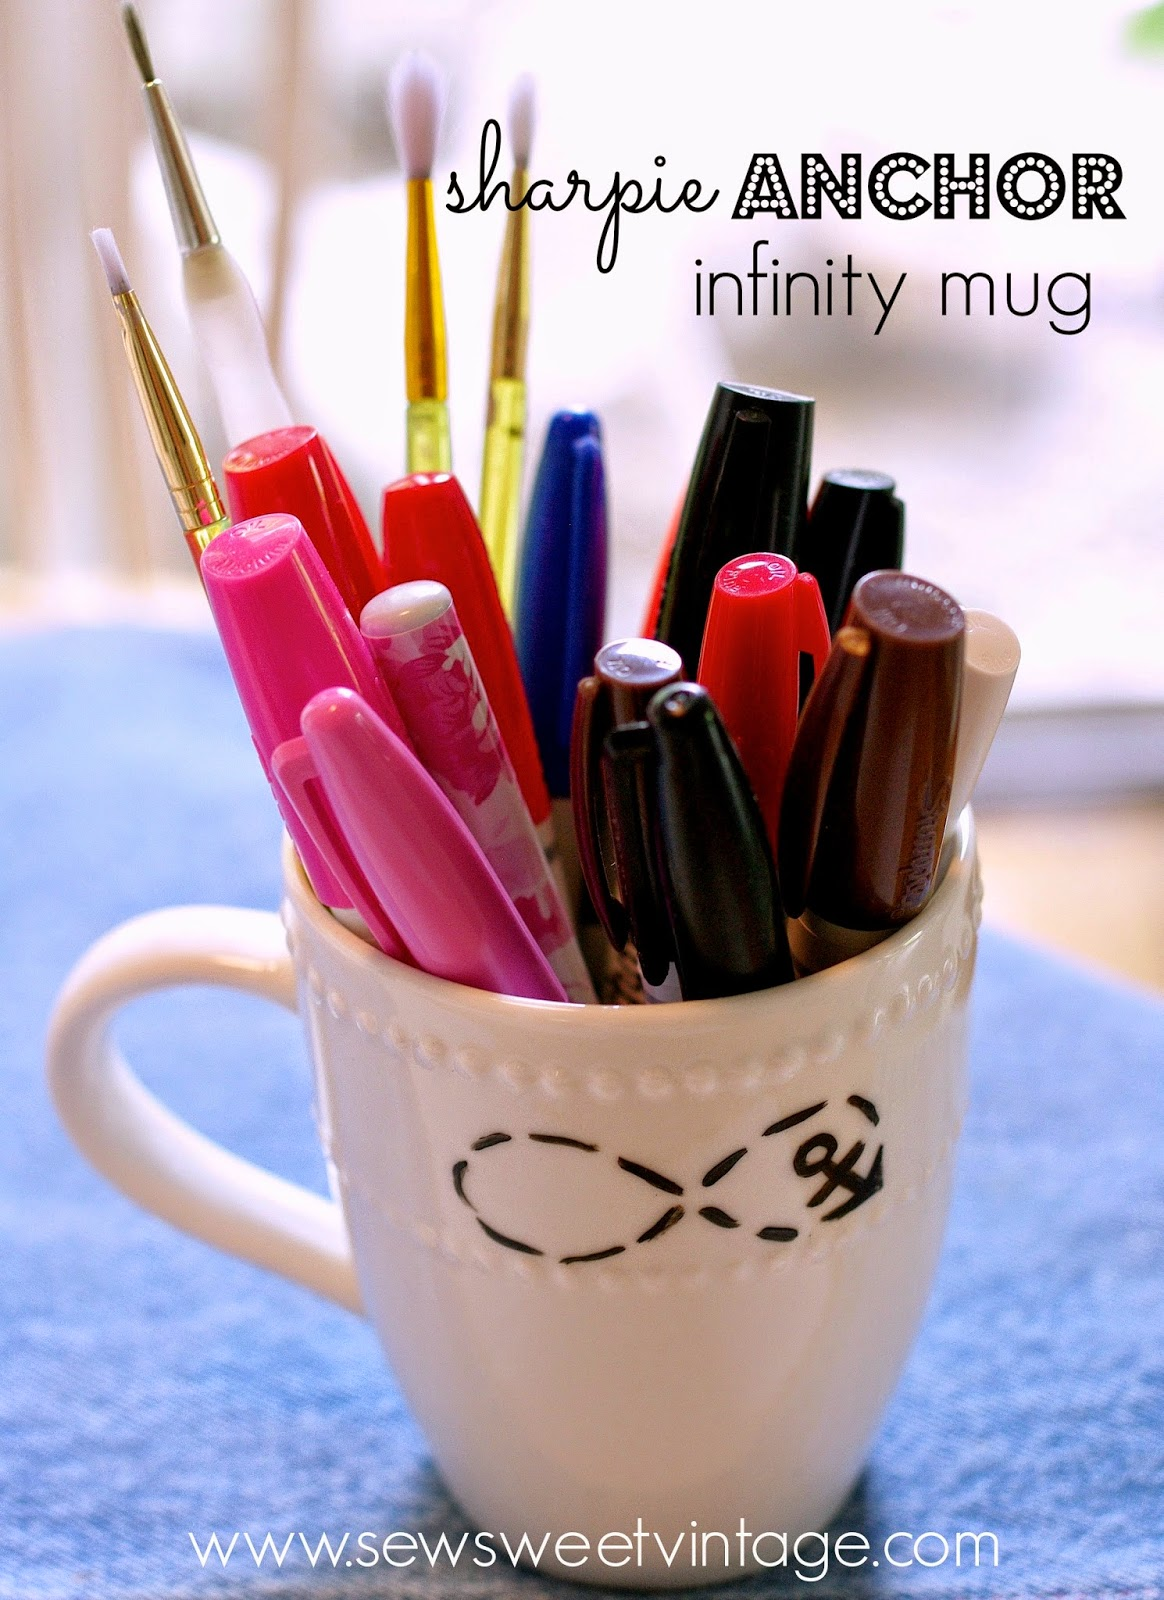 how to make a sharpie anchor mug